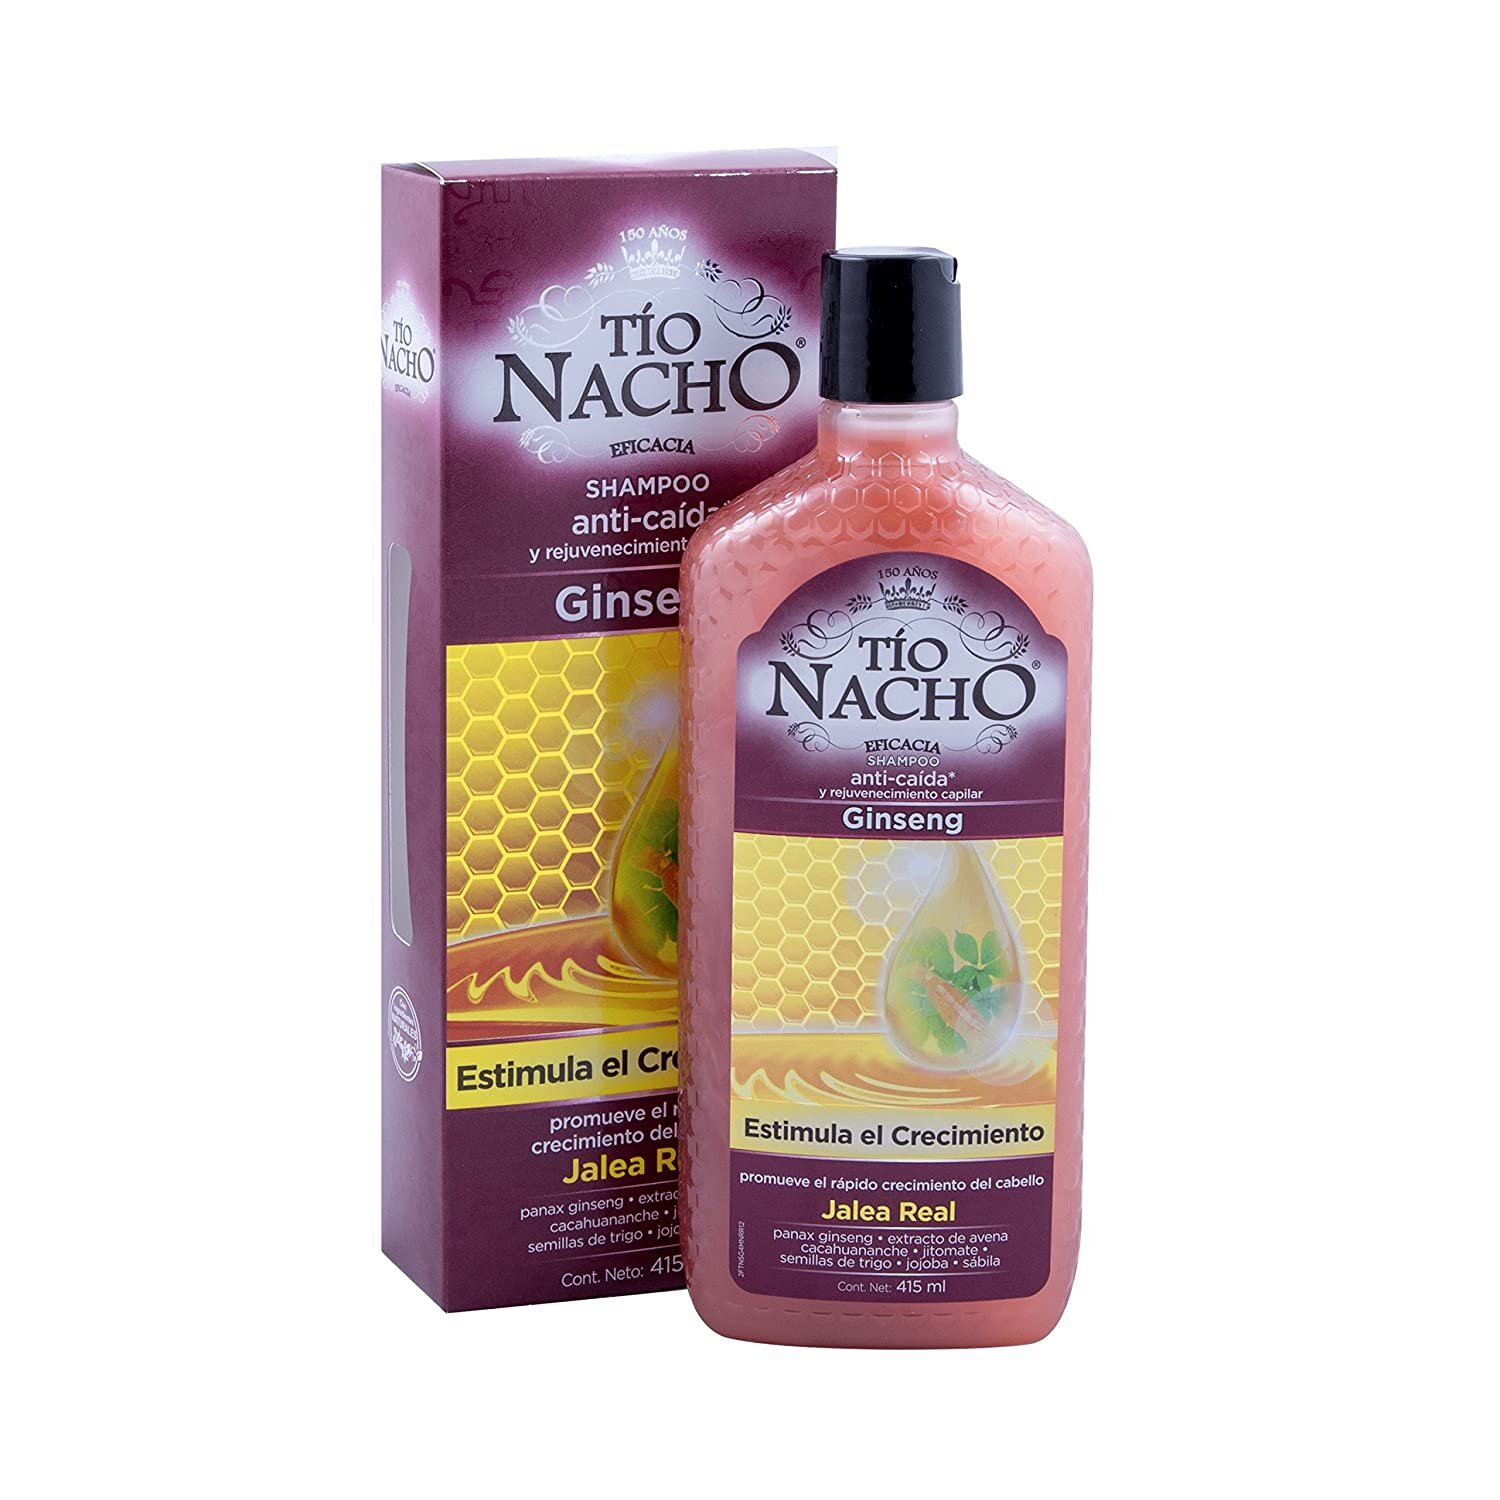 Amazon.com: Tio Nacho Ginseng Rejuvenation and Anti-Hair Loss/Anti-caida y rejuvenecimento Dcache Gift Set: Health & Personal Care